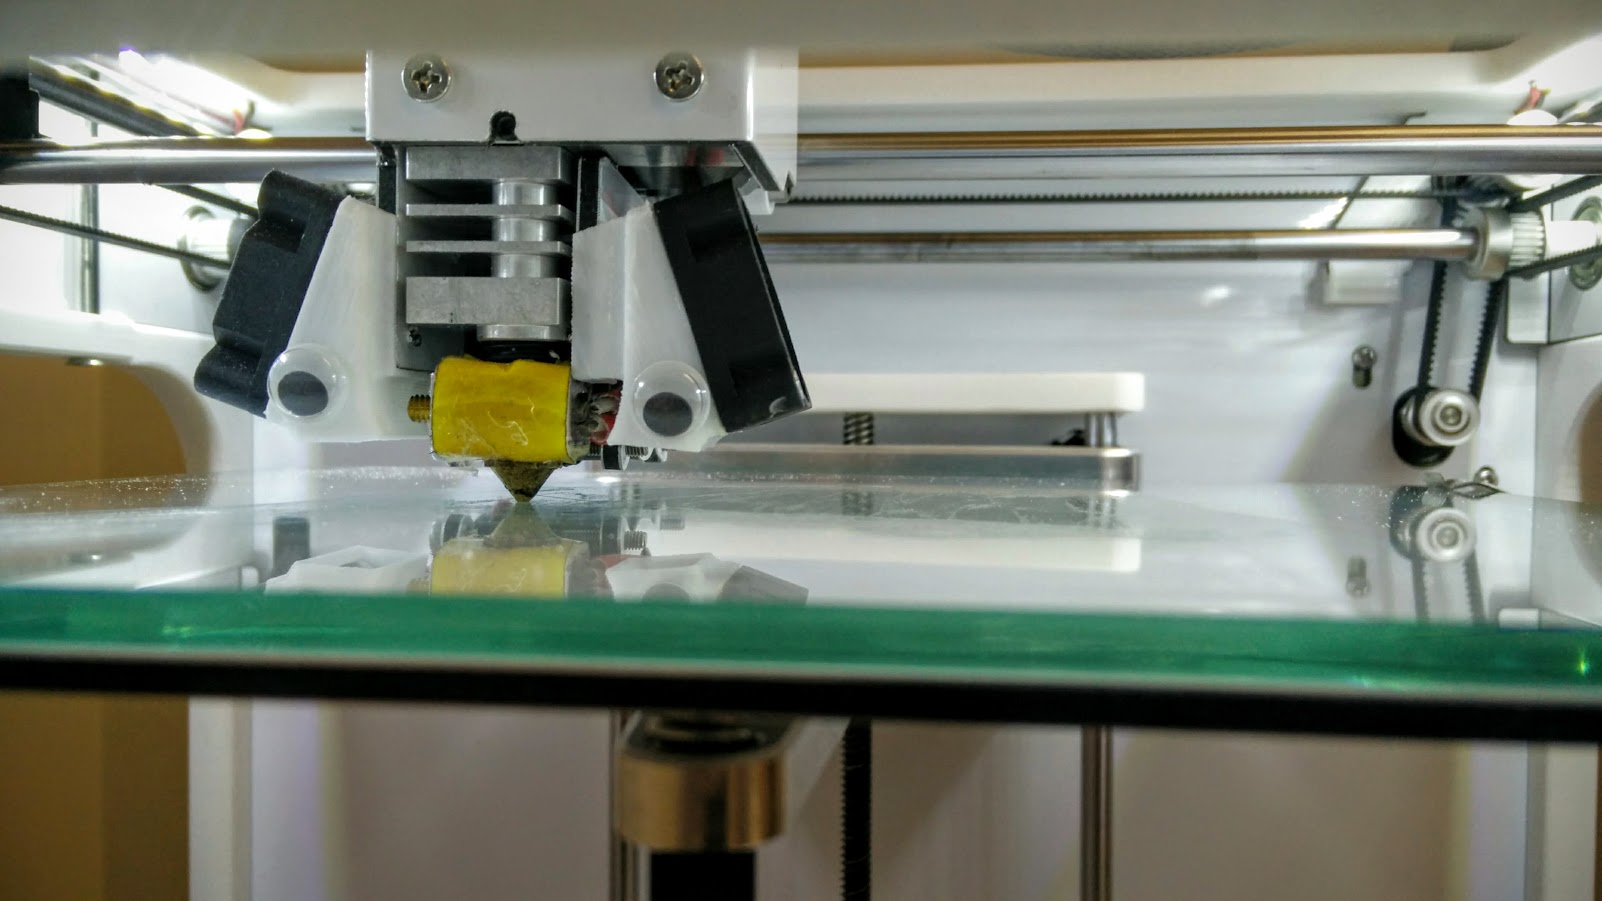 8. Watch the first layer (or few) of printing for problems. Press the knob to select  stop  if something goes wrong